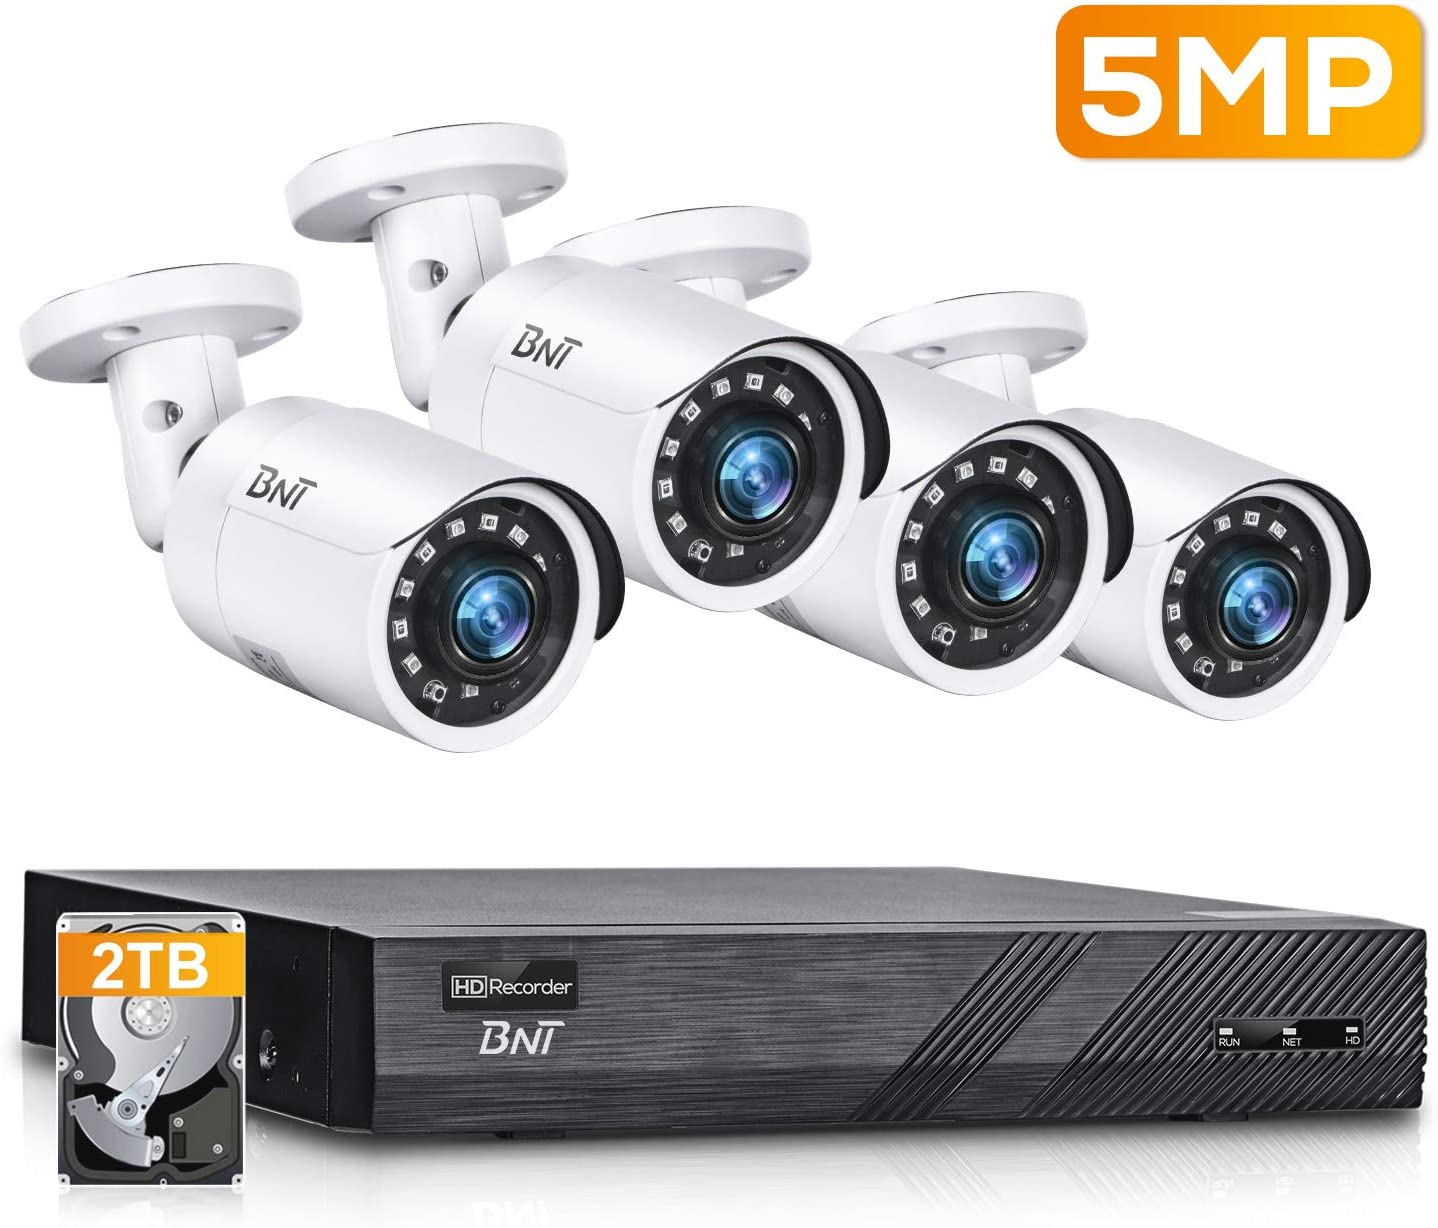 BNT 8CH 5MP PoE Outdoor Security Camera System, 4pcs Wired 5MP PoE Outdoor IP Cameras, 4K 8-Channel NVR Security System with 2TB HDD for 24/7 Camera Recording